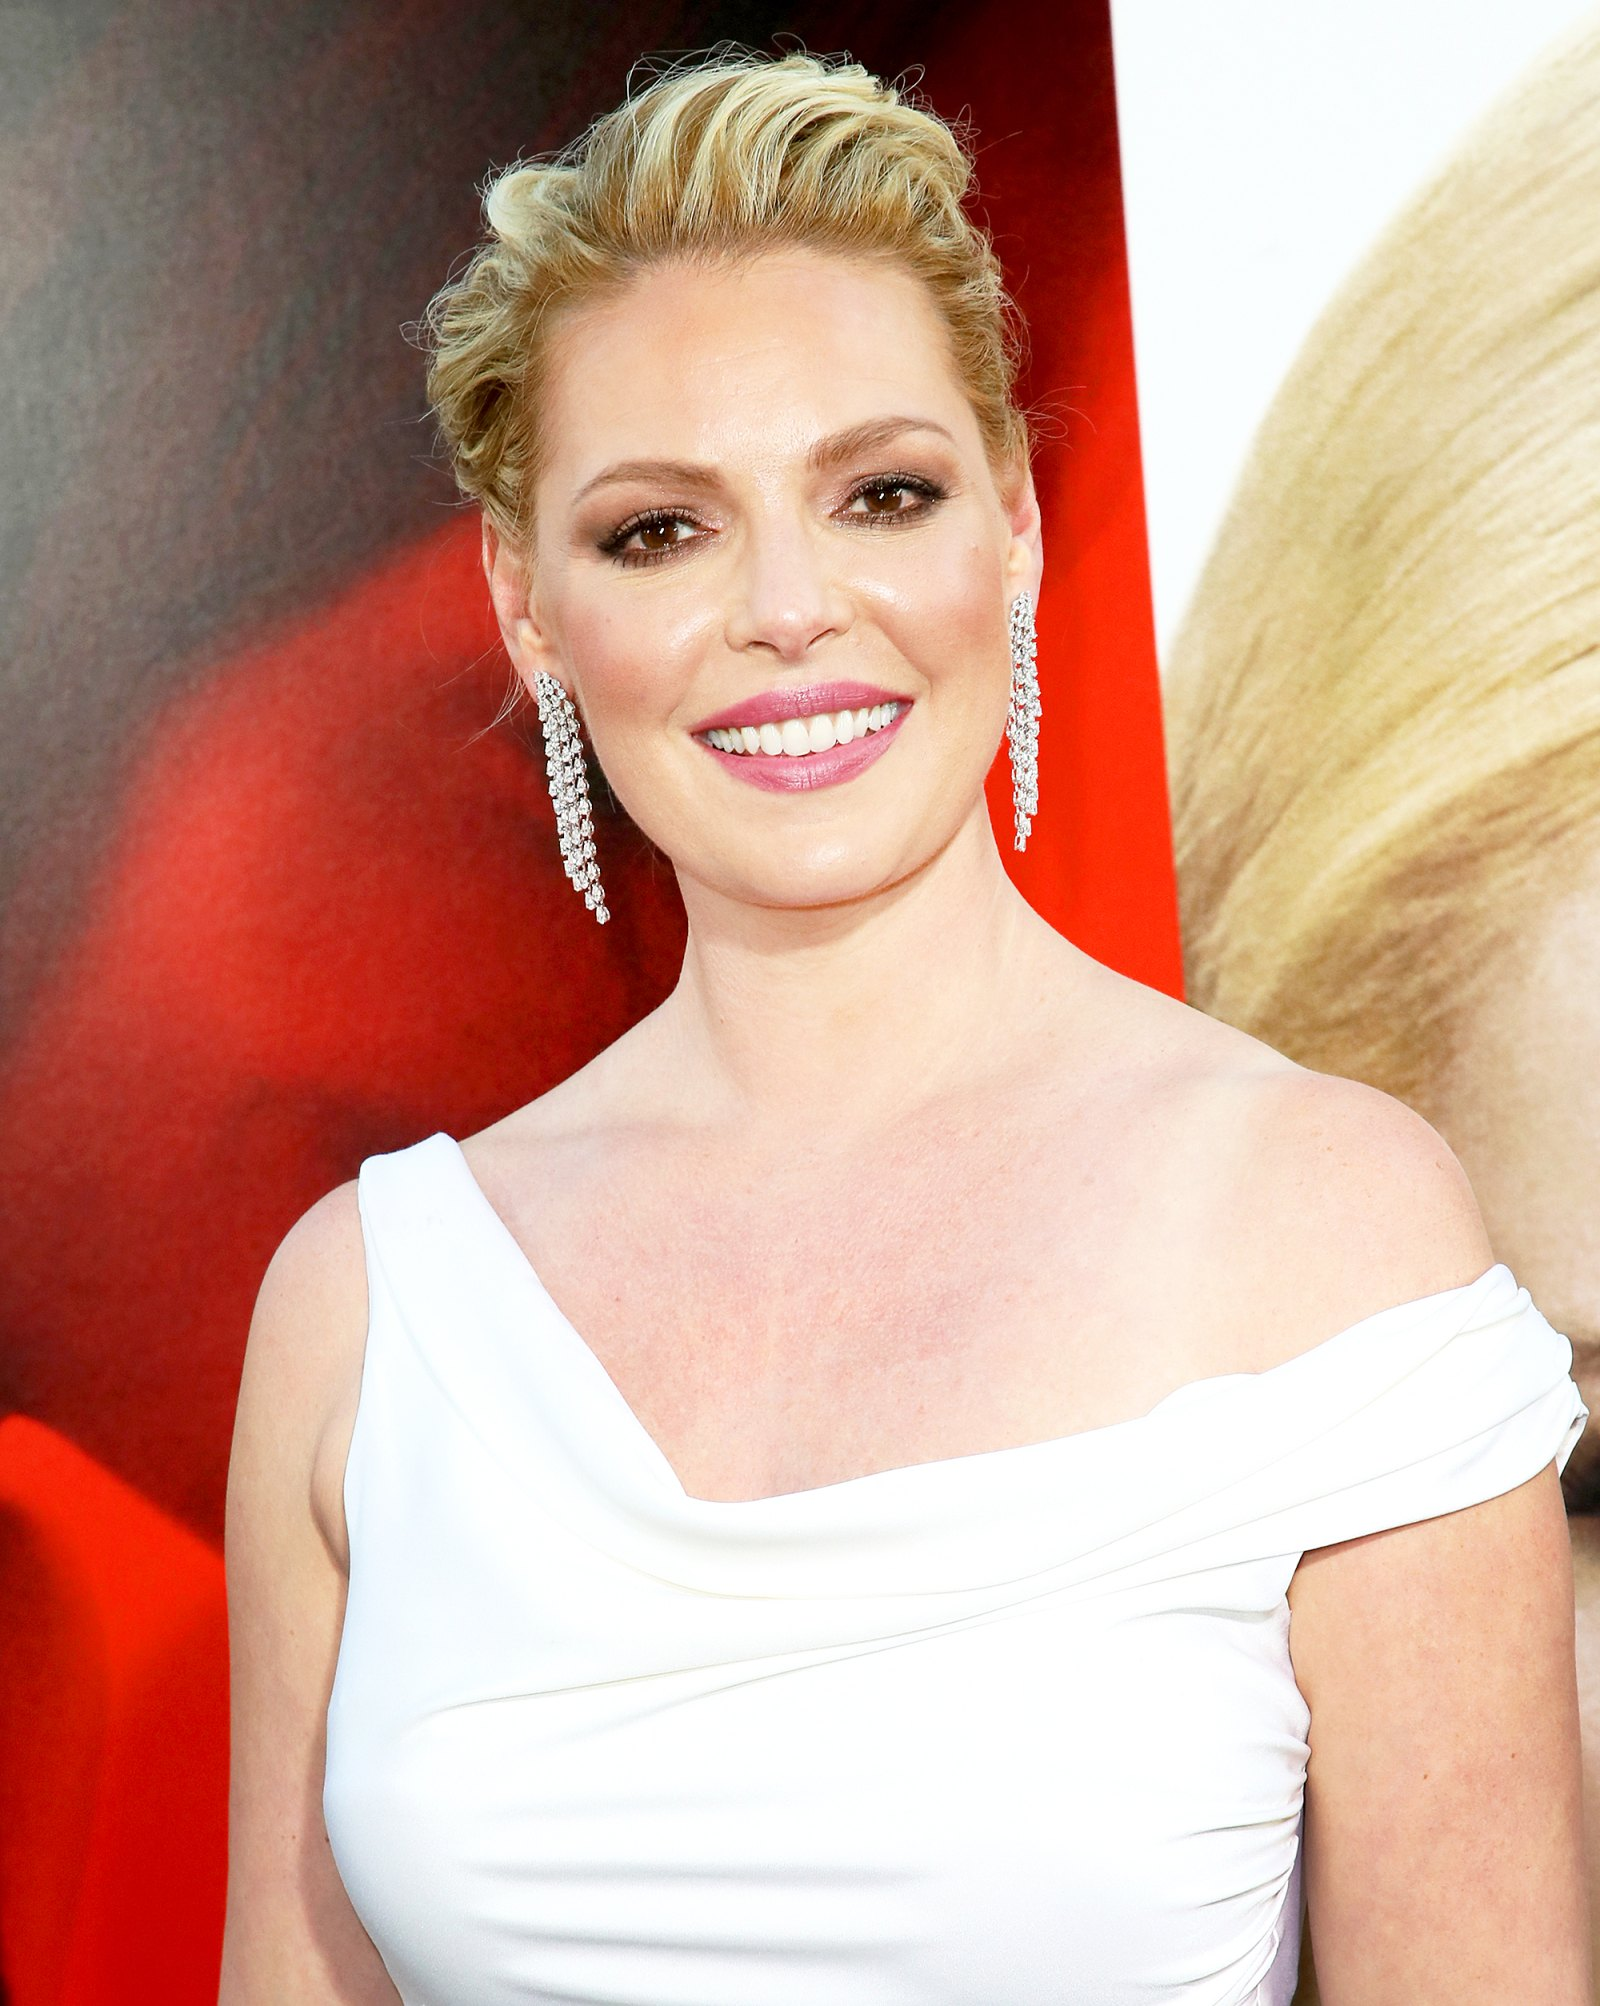 Katherine Heigl Shows Off Post-Baby Body, How She Lost Weight